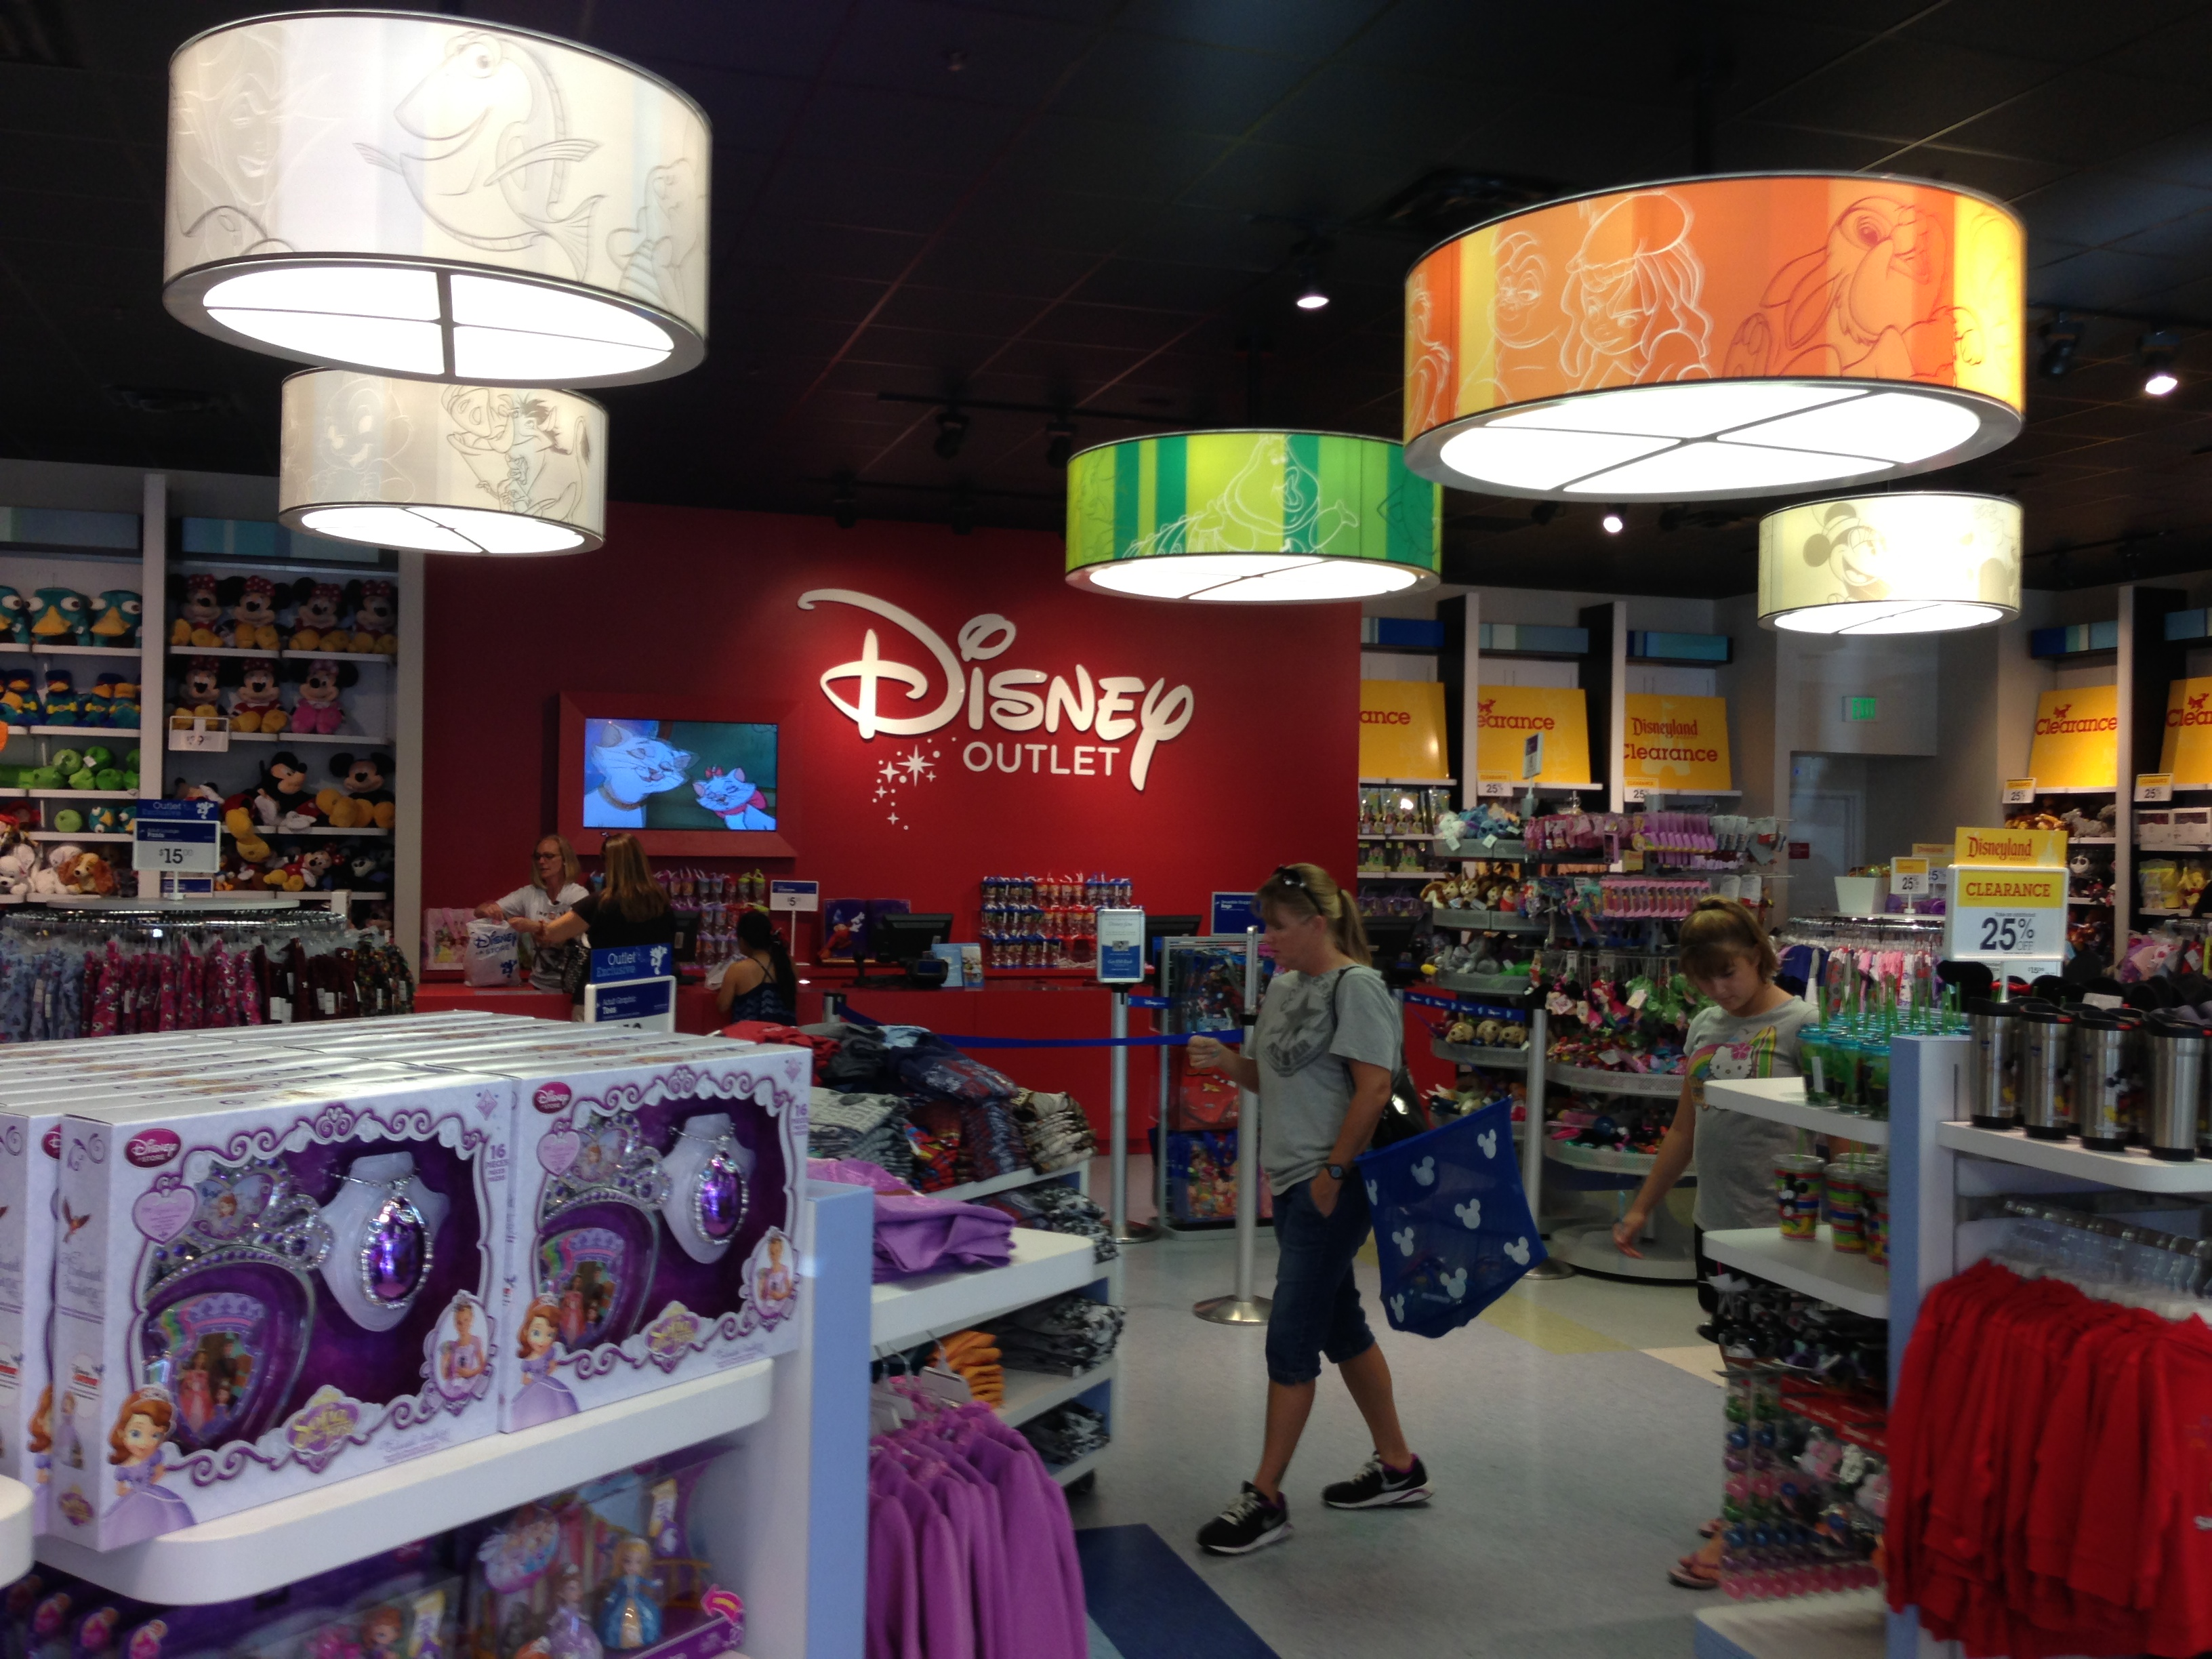 Disney Store Outlet Disney's consumer products sales are konkhmerit.ml, the company's official shopping portal and the Disney stores retail chain. The Disney stores retail chain, which debuted in , is owned and operated by an unaffiliated third party in Japan under a license agreement with The Walt Disney Company.